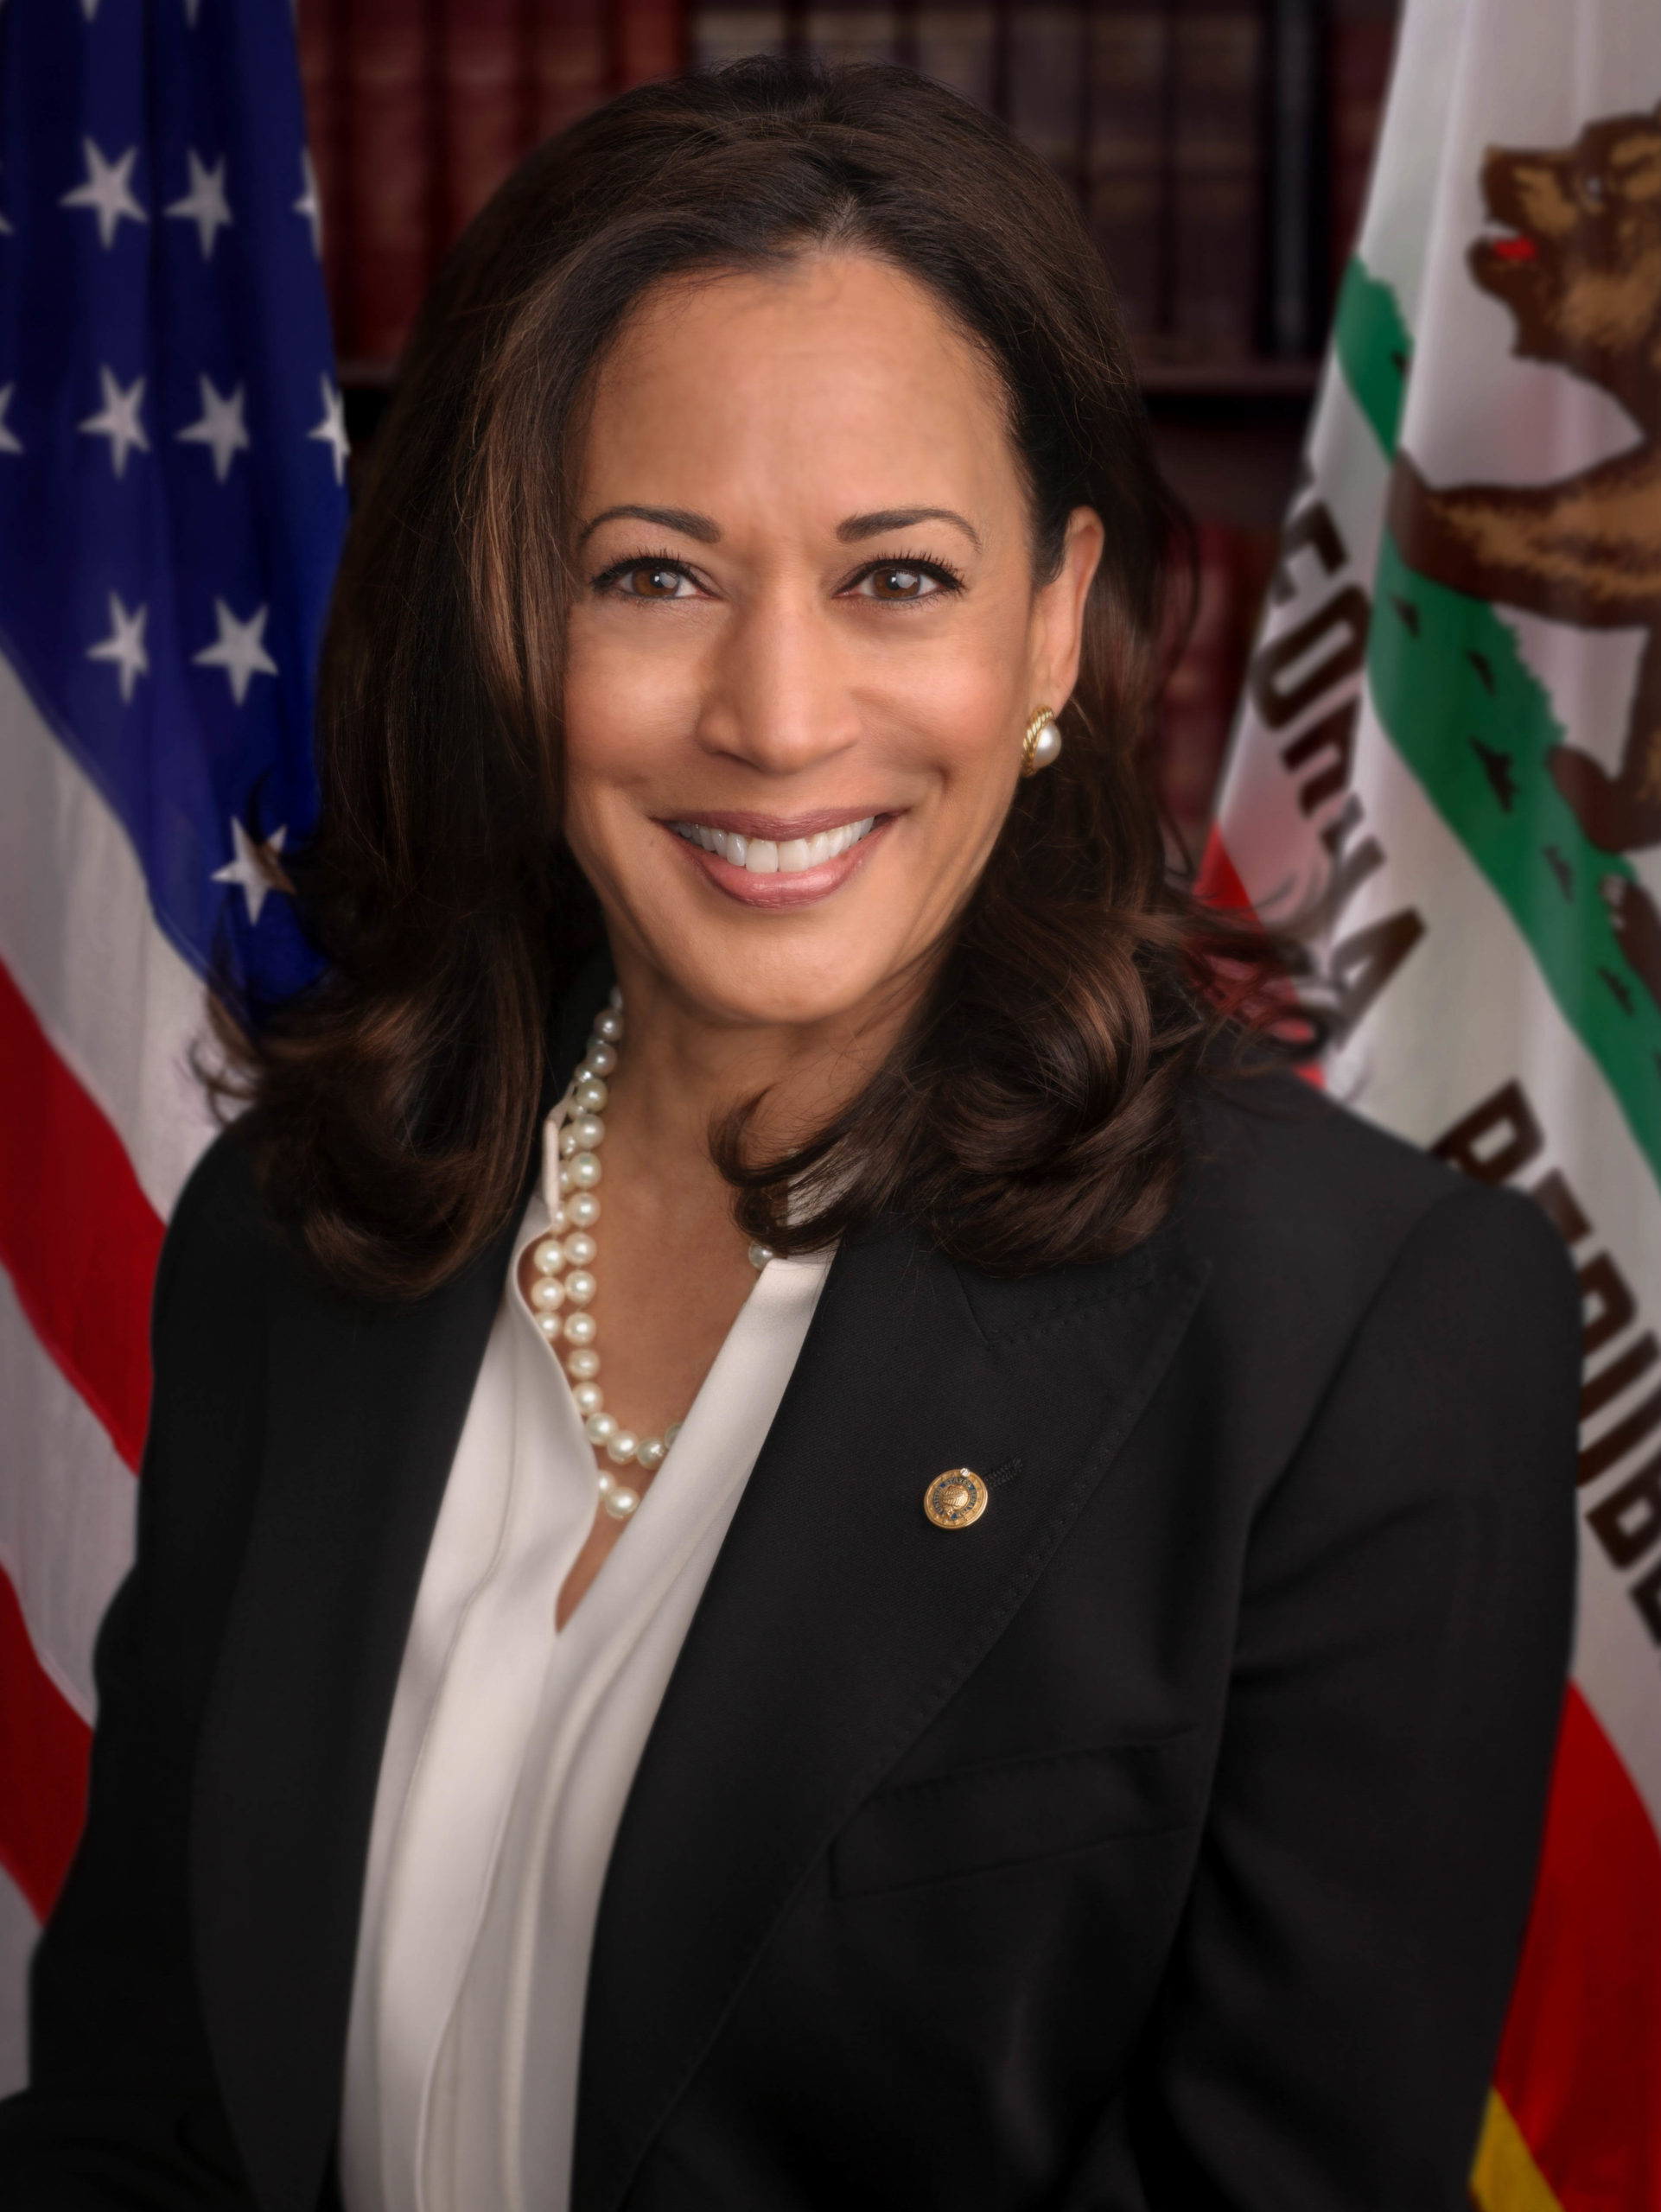 Kamala Harris, Vice-President of the USA